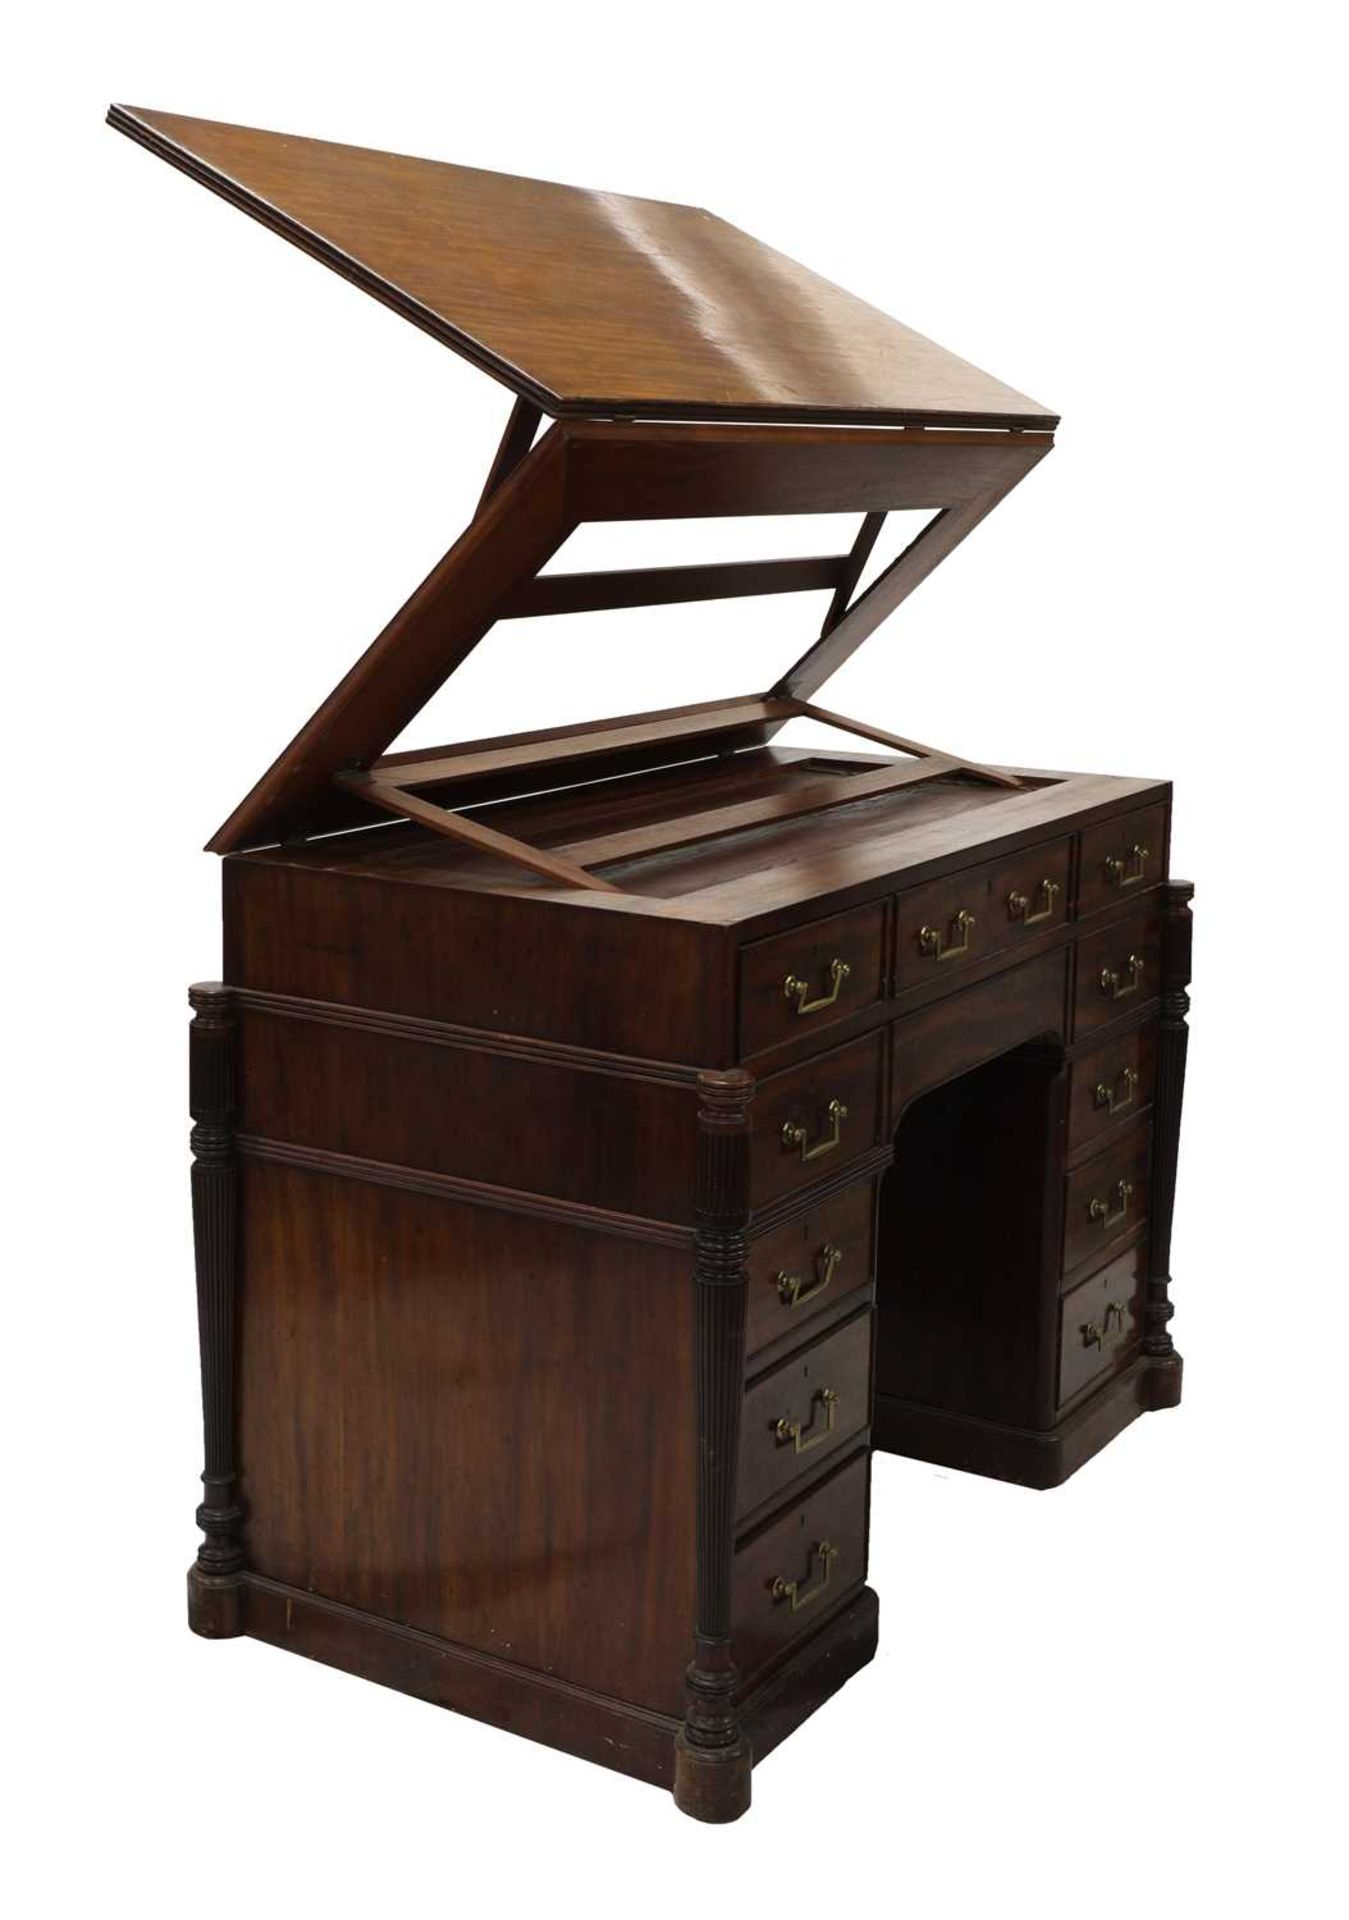 A George III mahogany architect's desk/secretaire, - Image 7 of 30